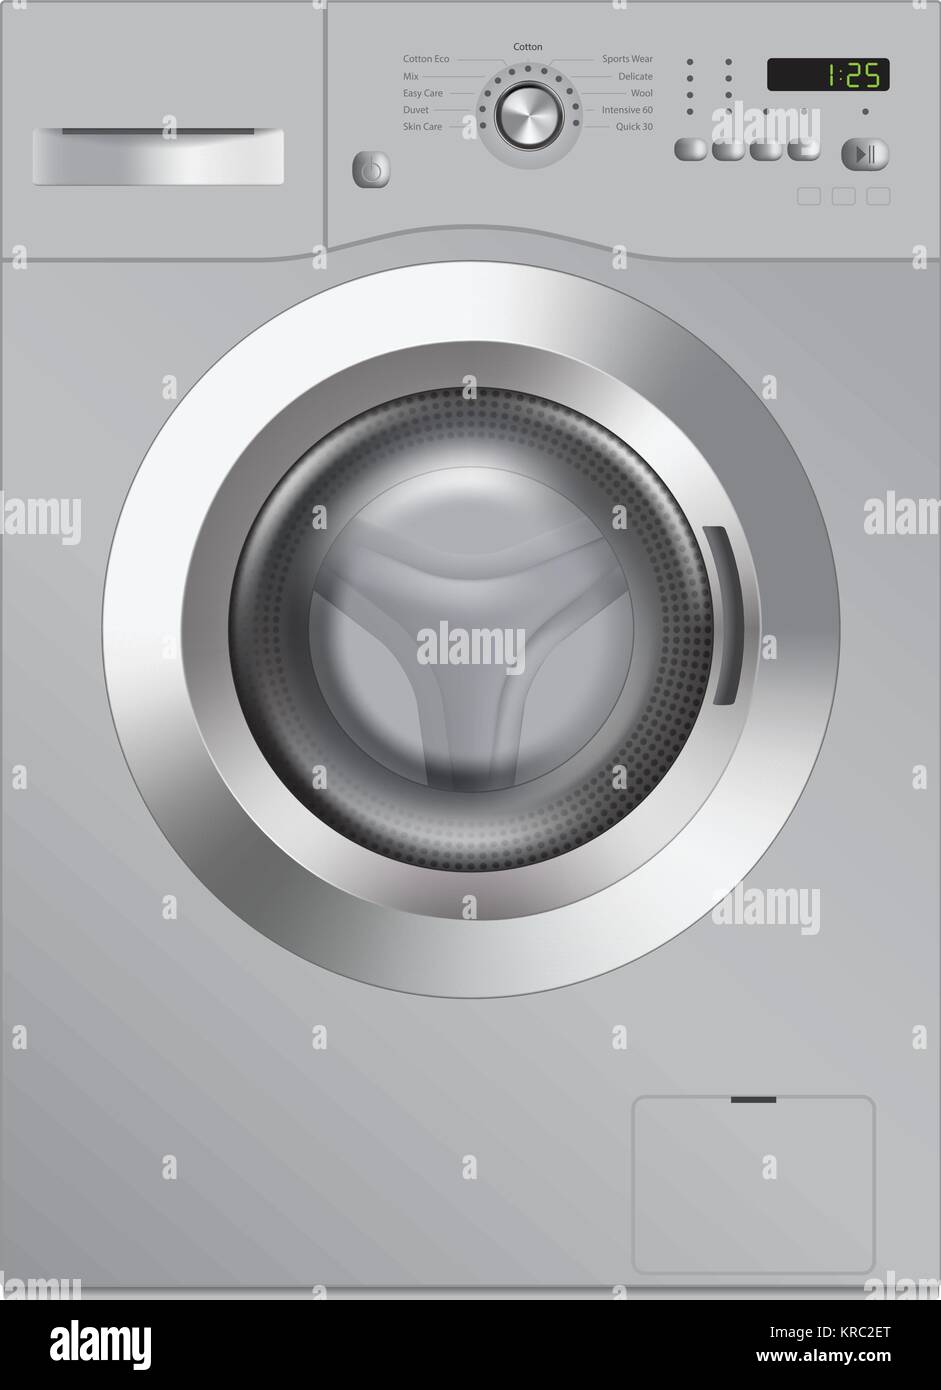 Washing machine, realistic vector illustration - Stock Image